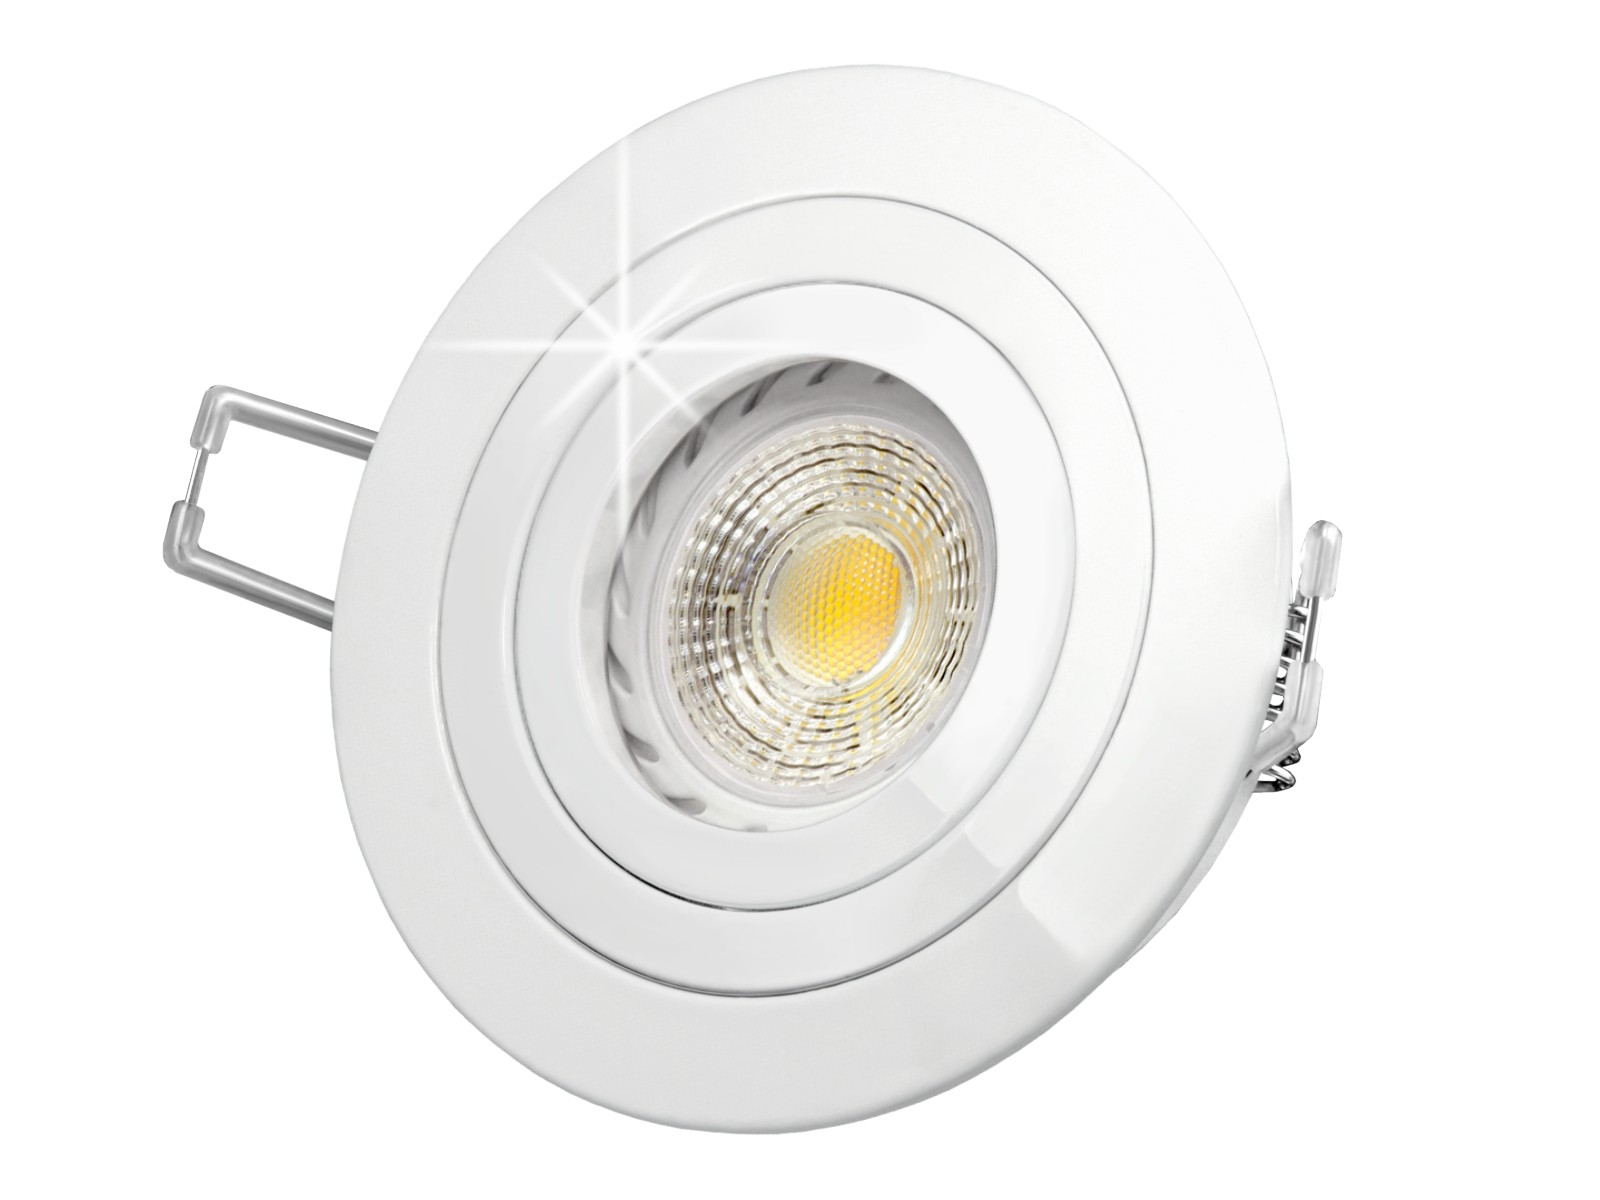 Led Spot Flach : led spots flach ~ Watch28wear.com Haus und Dekorationen